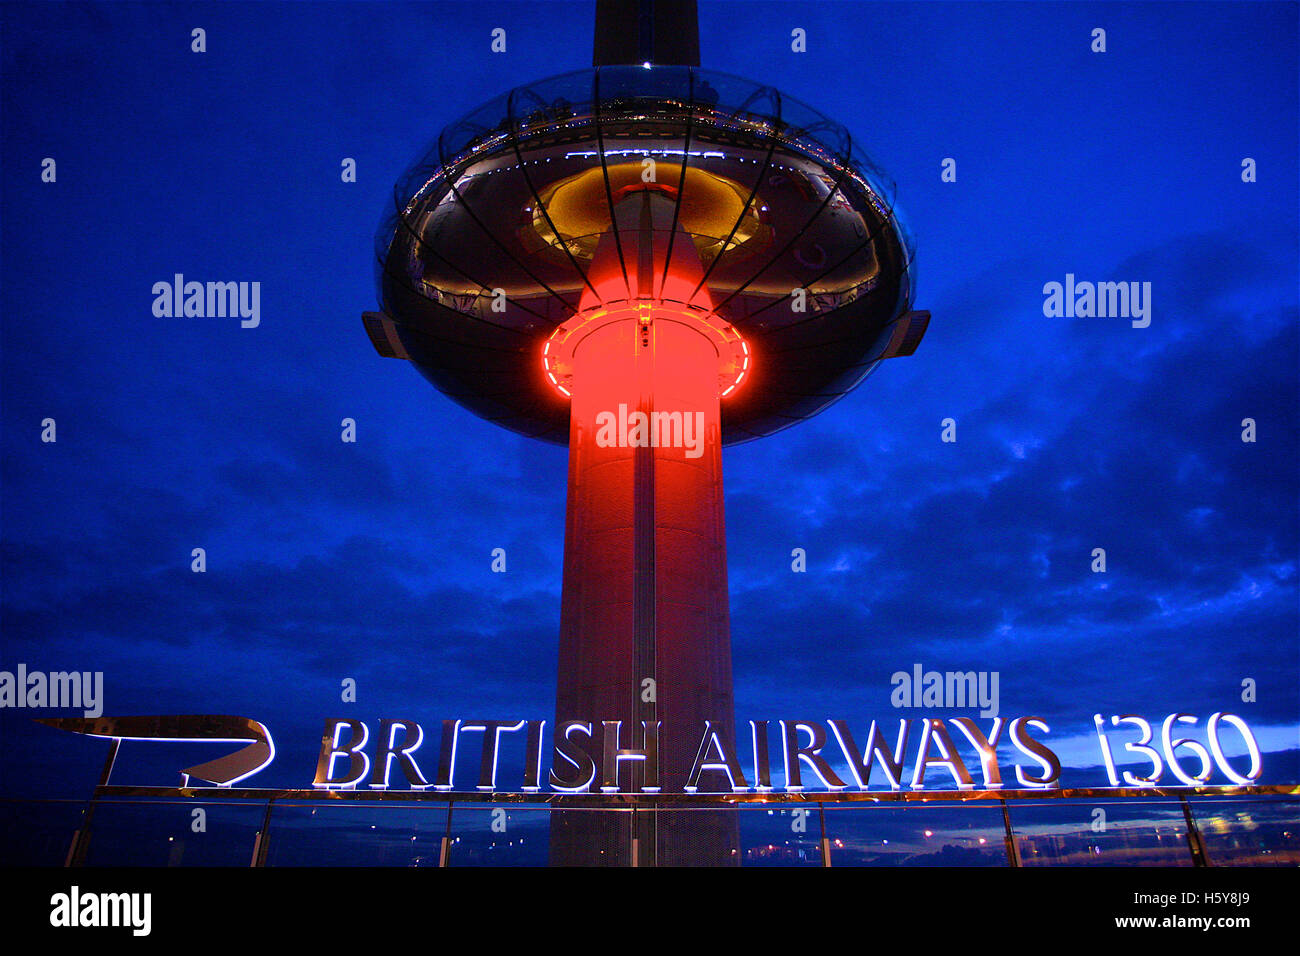 British Airways i360 Observation Tower in Brighton, East Sussex at night. - Stock Image